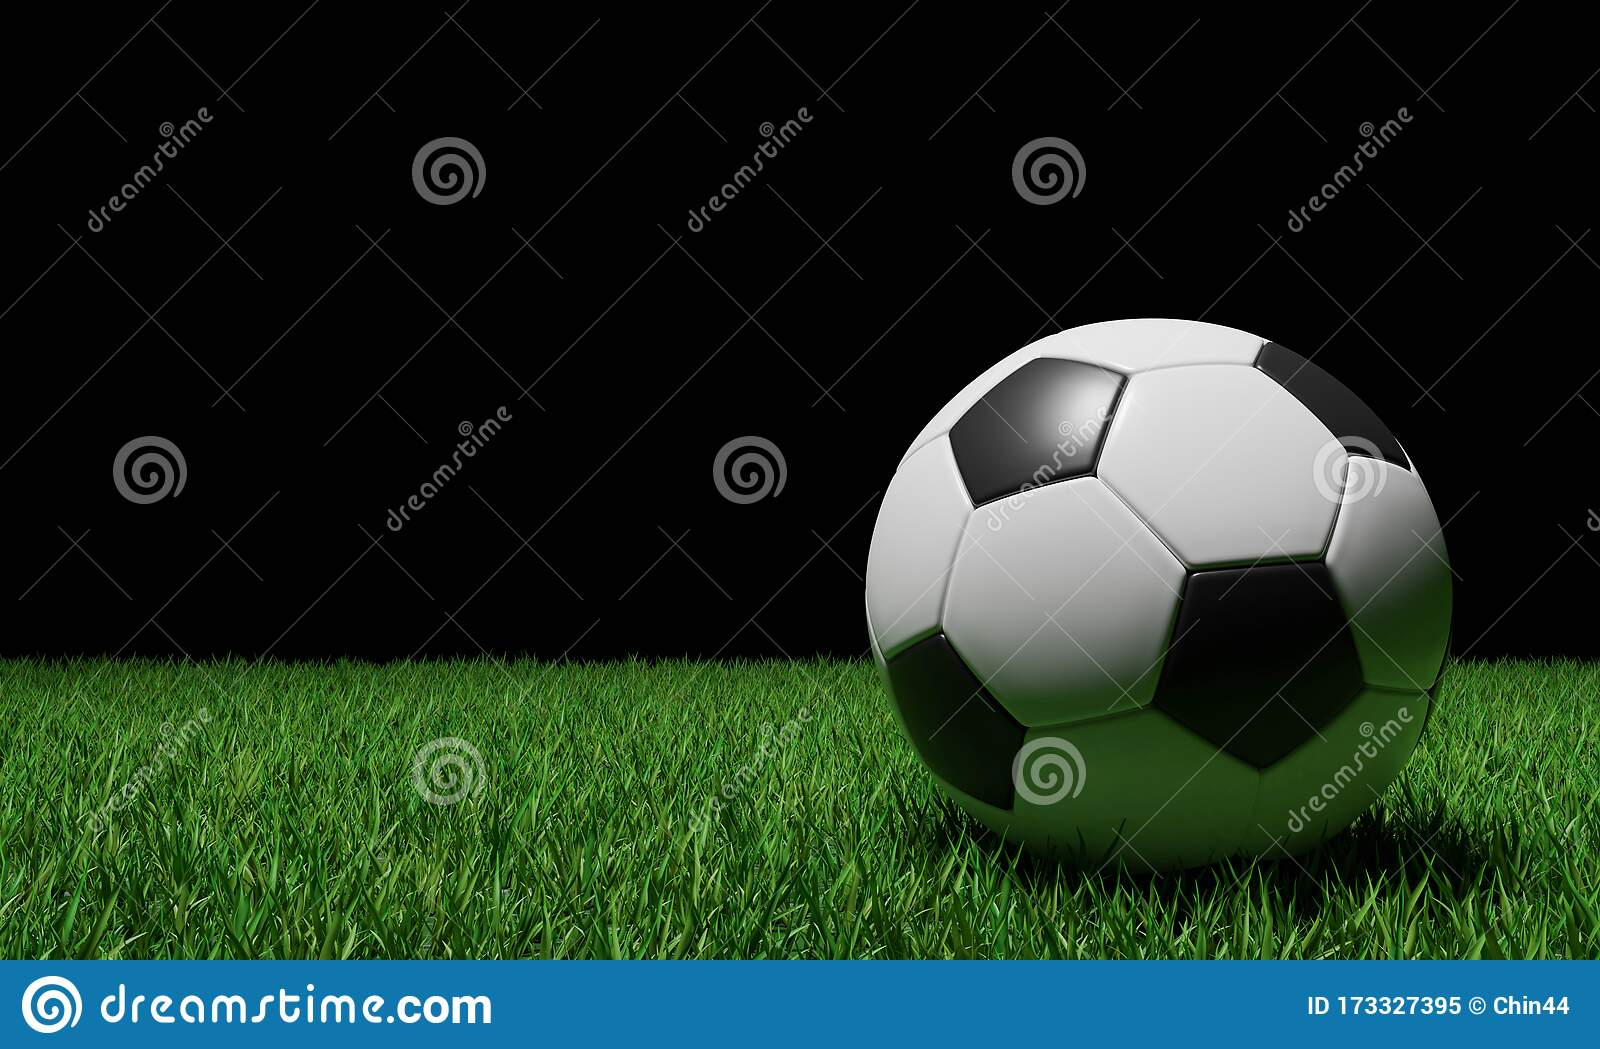 realistic soccer ball football ball basic pattern green grass field d style rendering concept game olympic japan 173327395